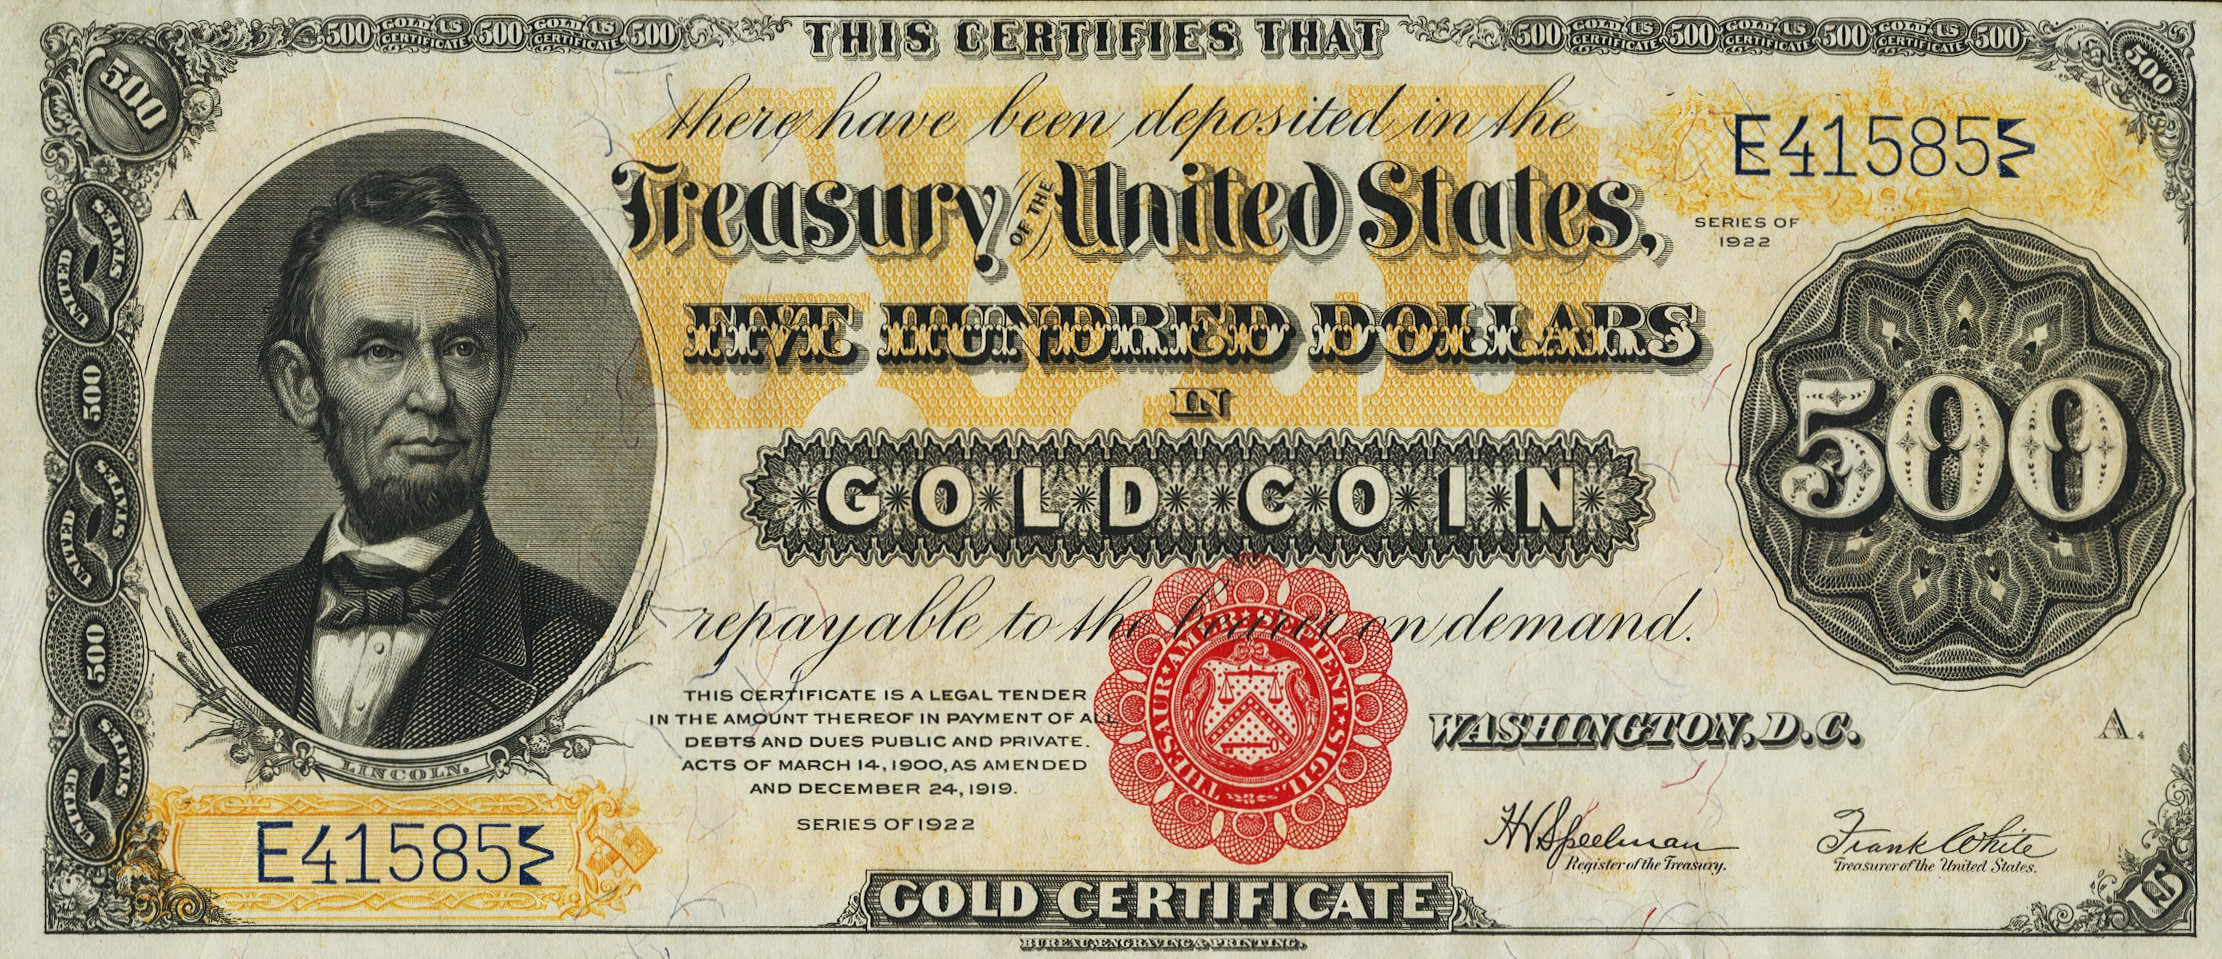 Gold certificates and bank notes for sale donckelly 500 gold notes series 1882 1922 xflitez Choice Image